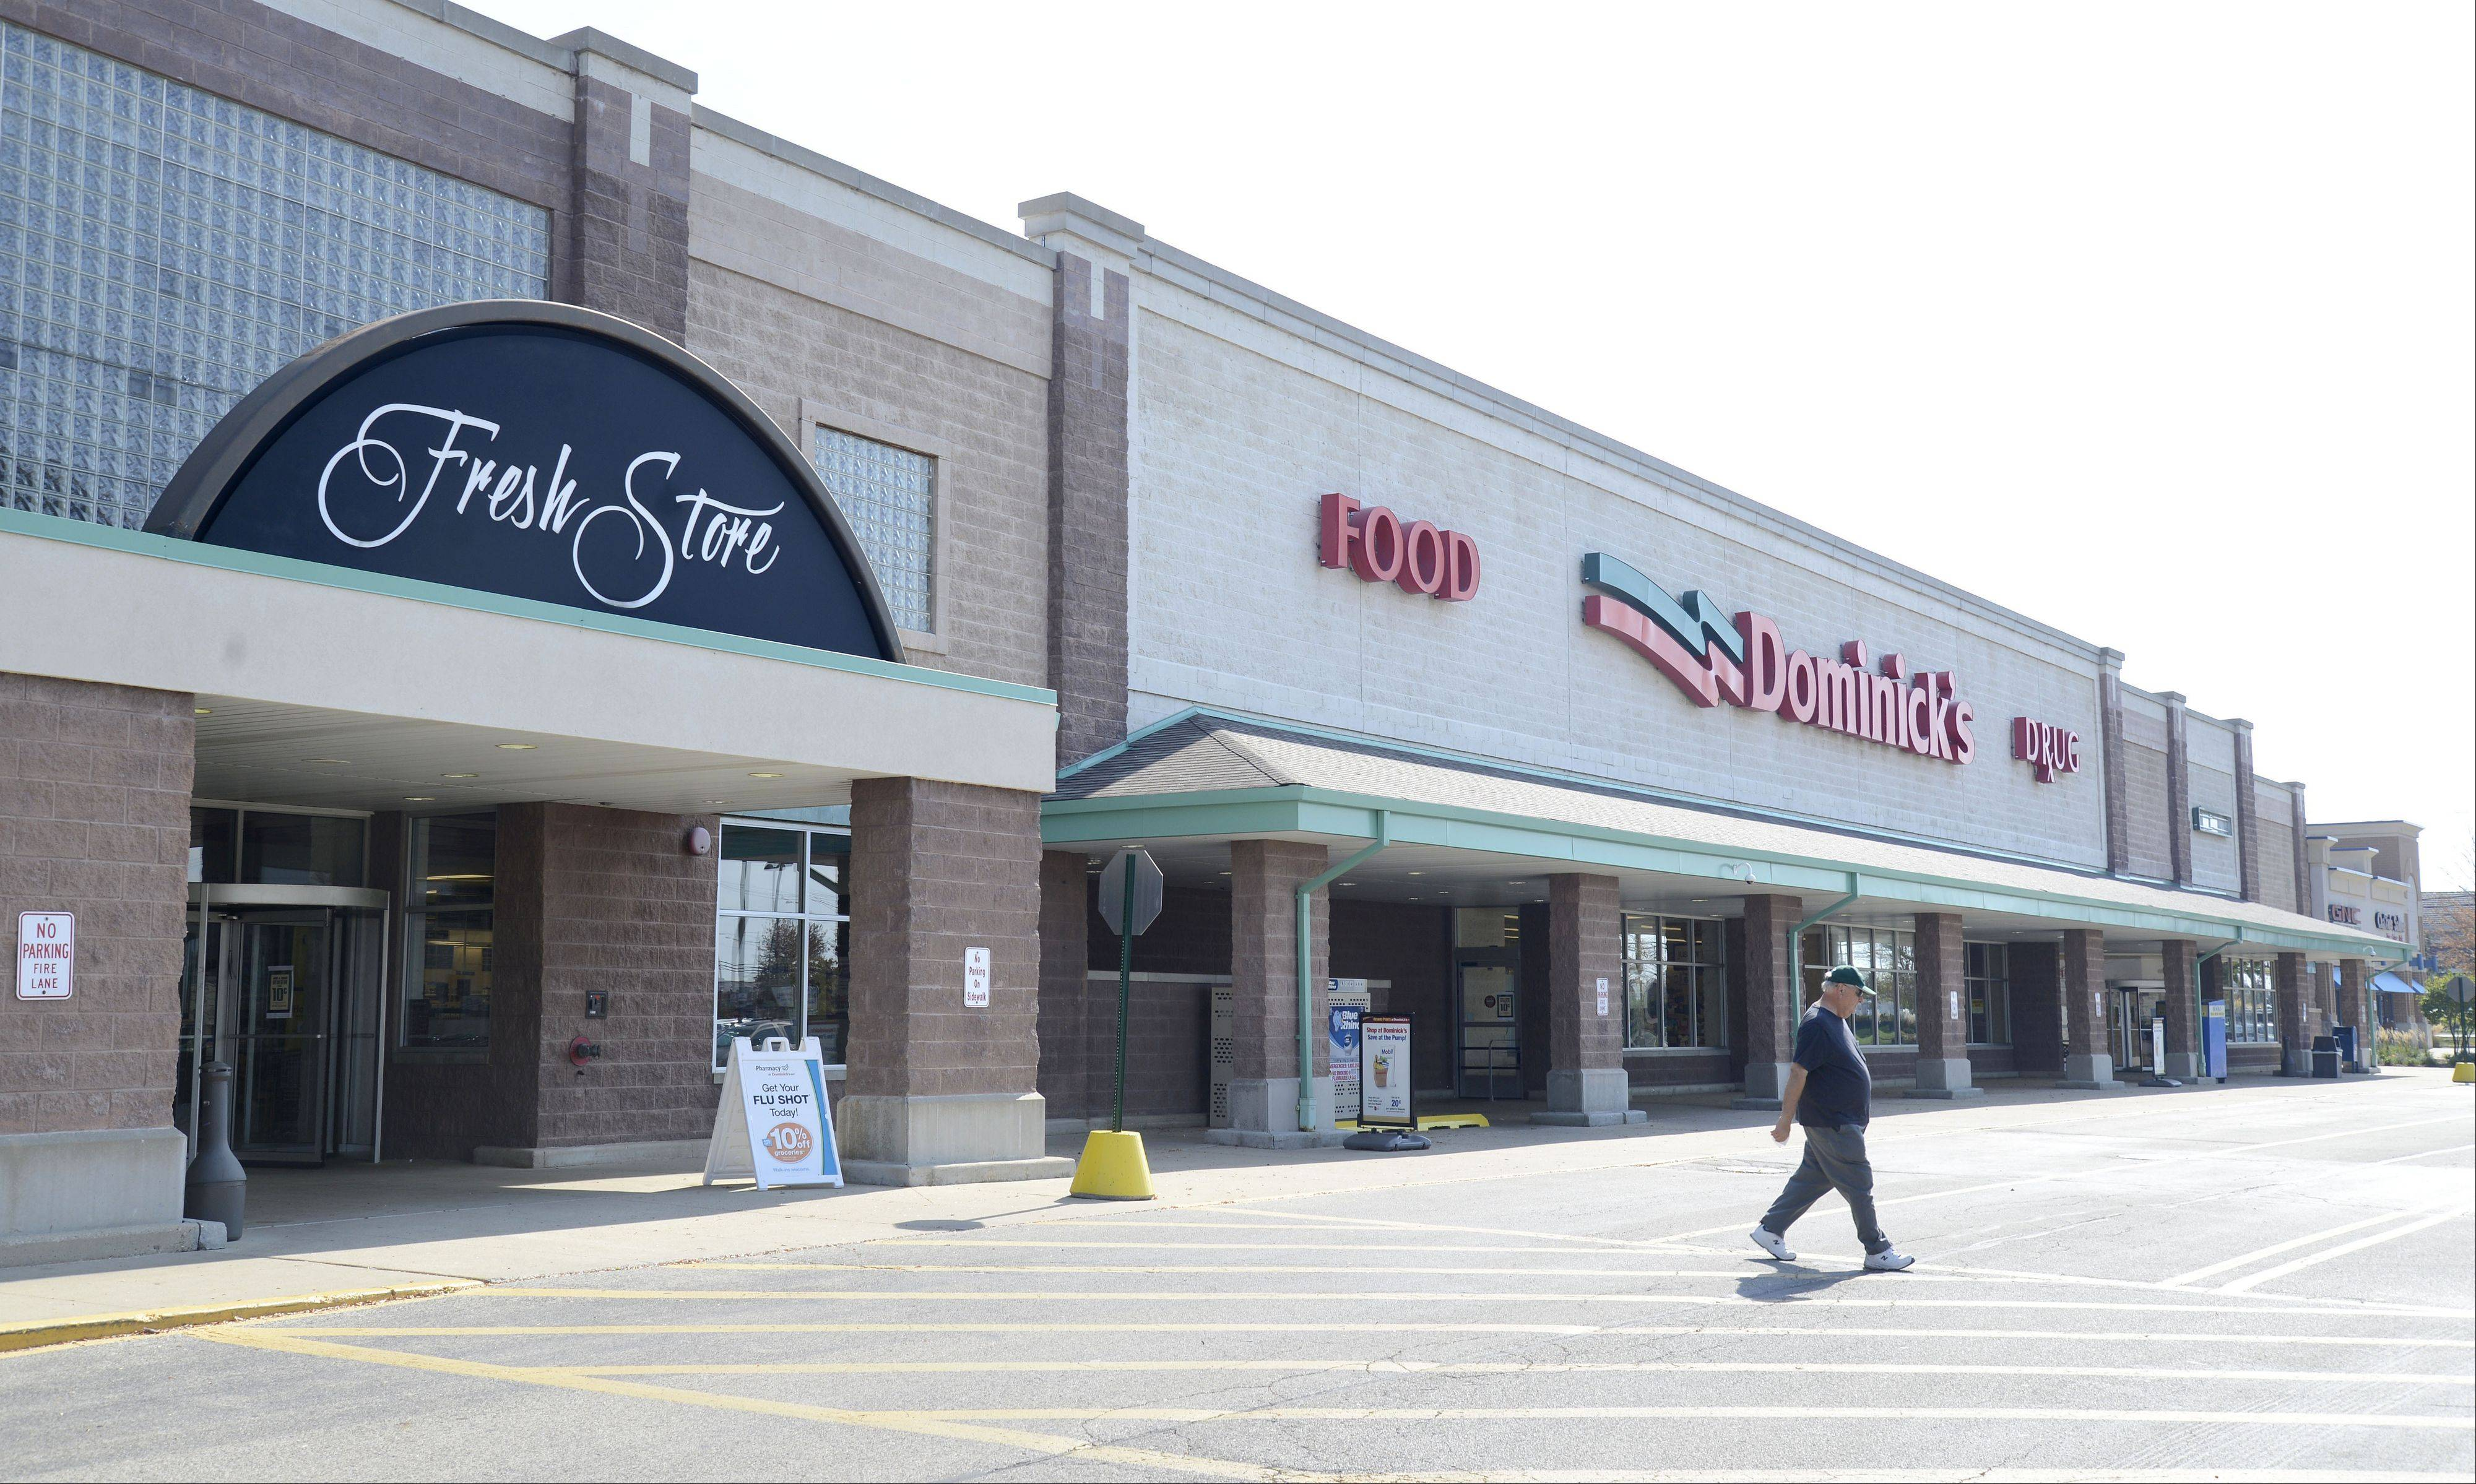 Safeway Inc., the West Coast-based grocery giant that bought Dominick's 15 years ago for $1.8 billion, announced its plans to exit the area by early next year after years of battling unsuccessfully in the ever more competitive Chicago grocery market. This location is at 101 N. Randall Rd in Lake in the Hills.